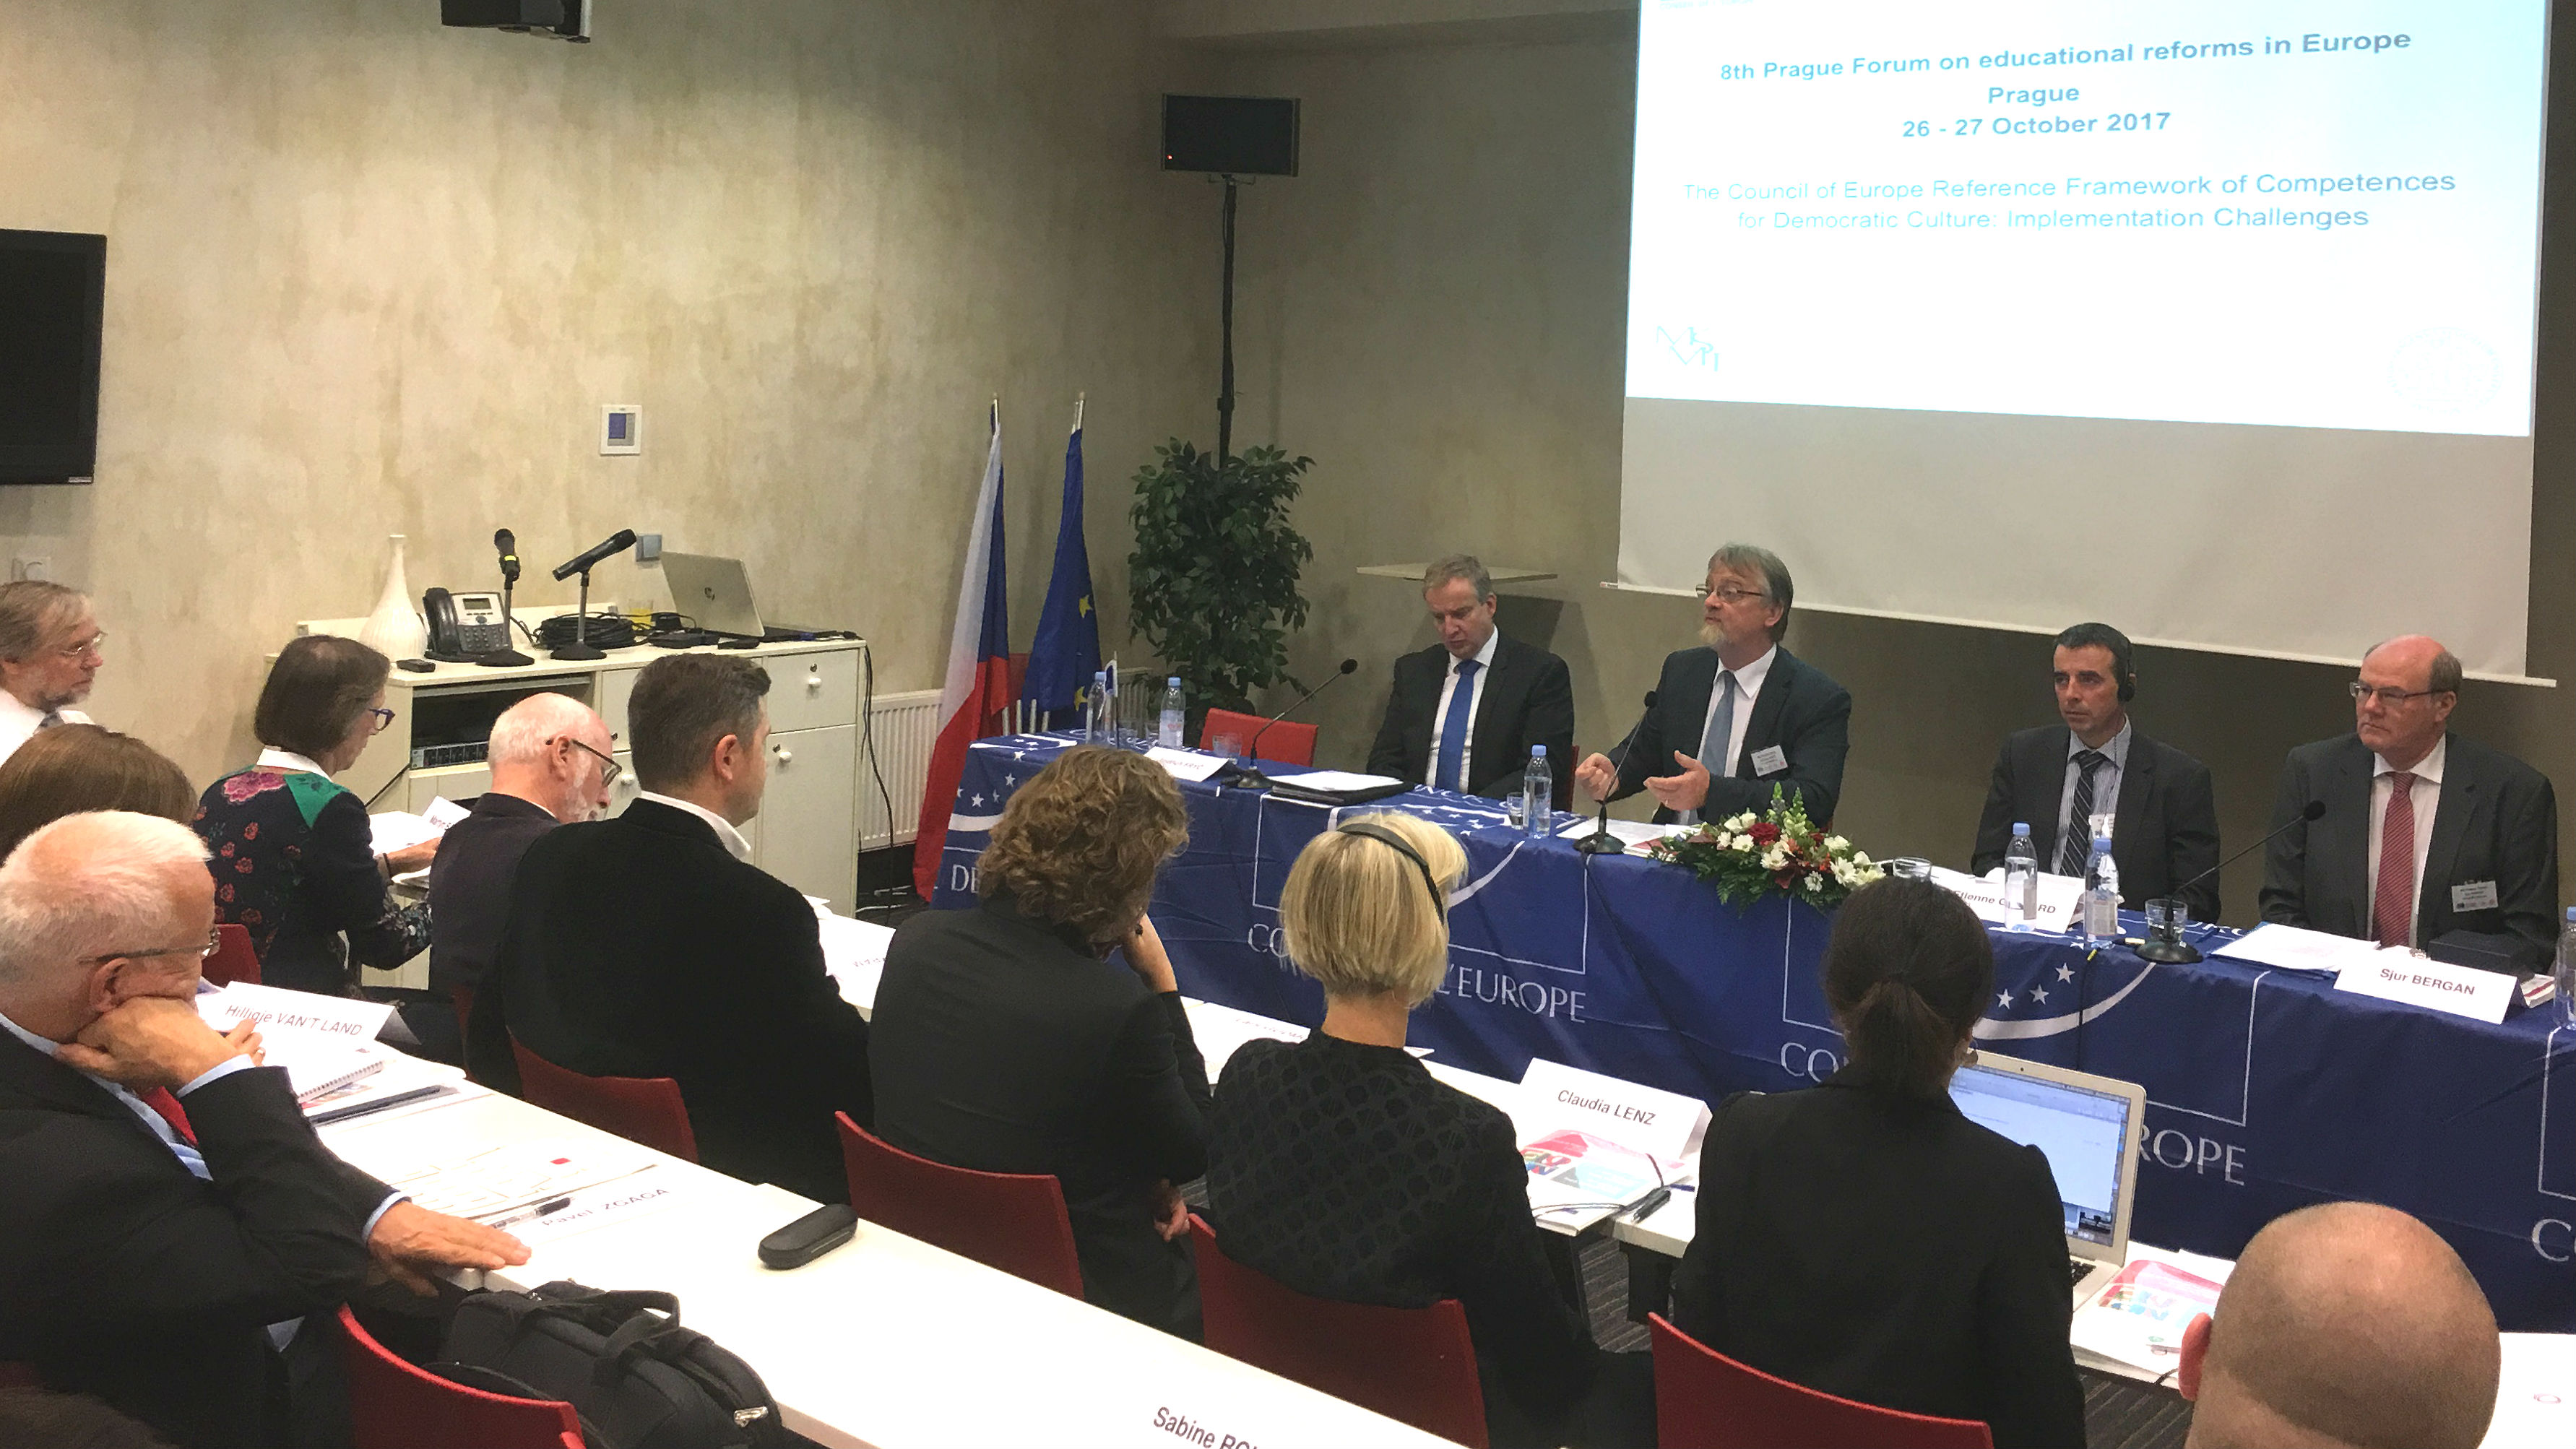 New Reference Framework of Competences for Democratic Culture (RFCDC) launched in Prague